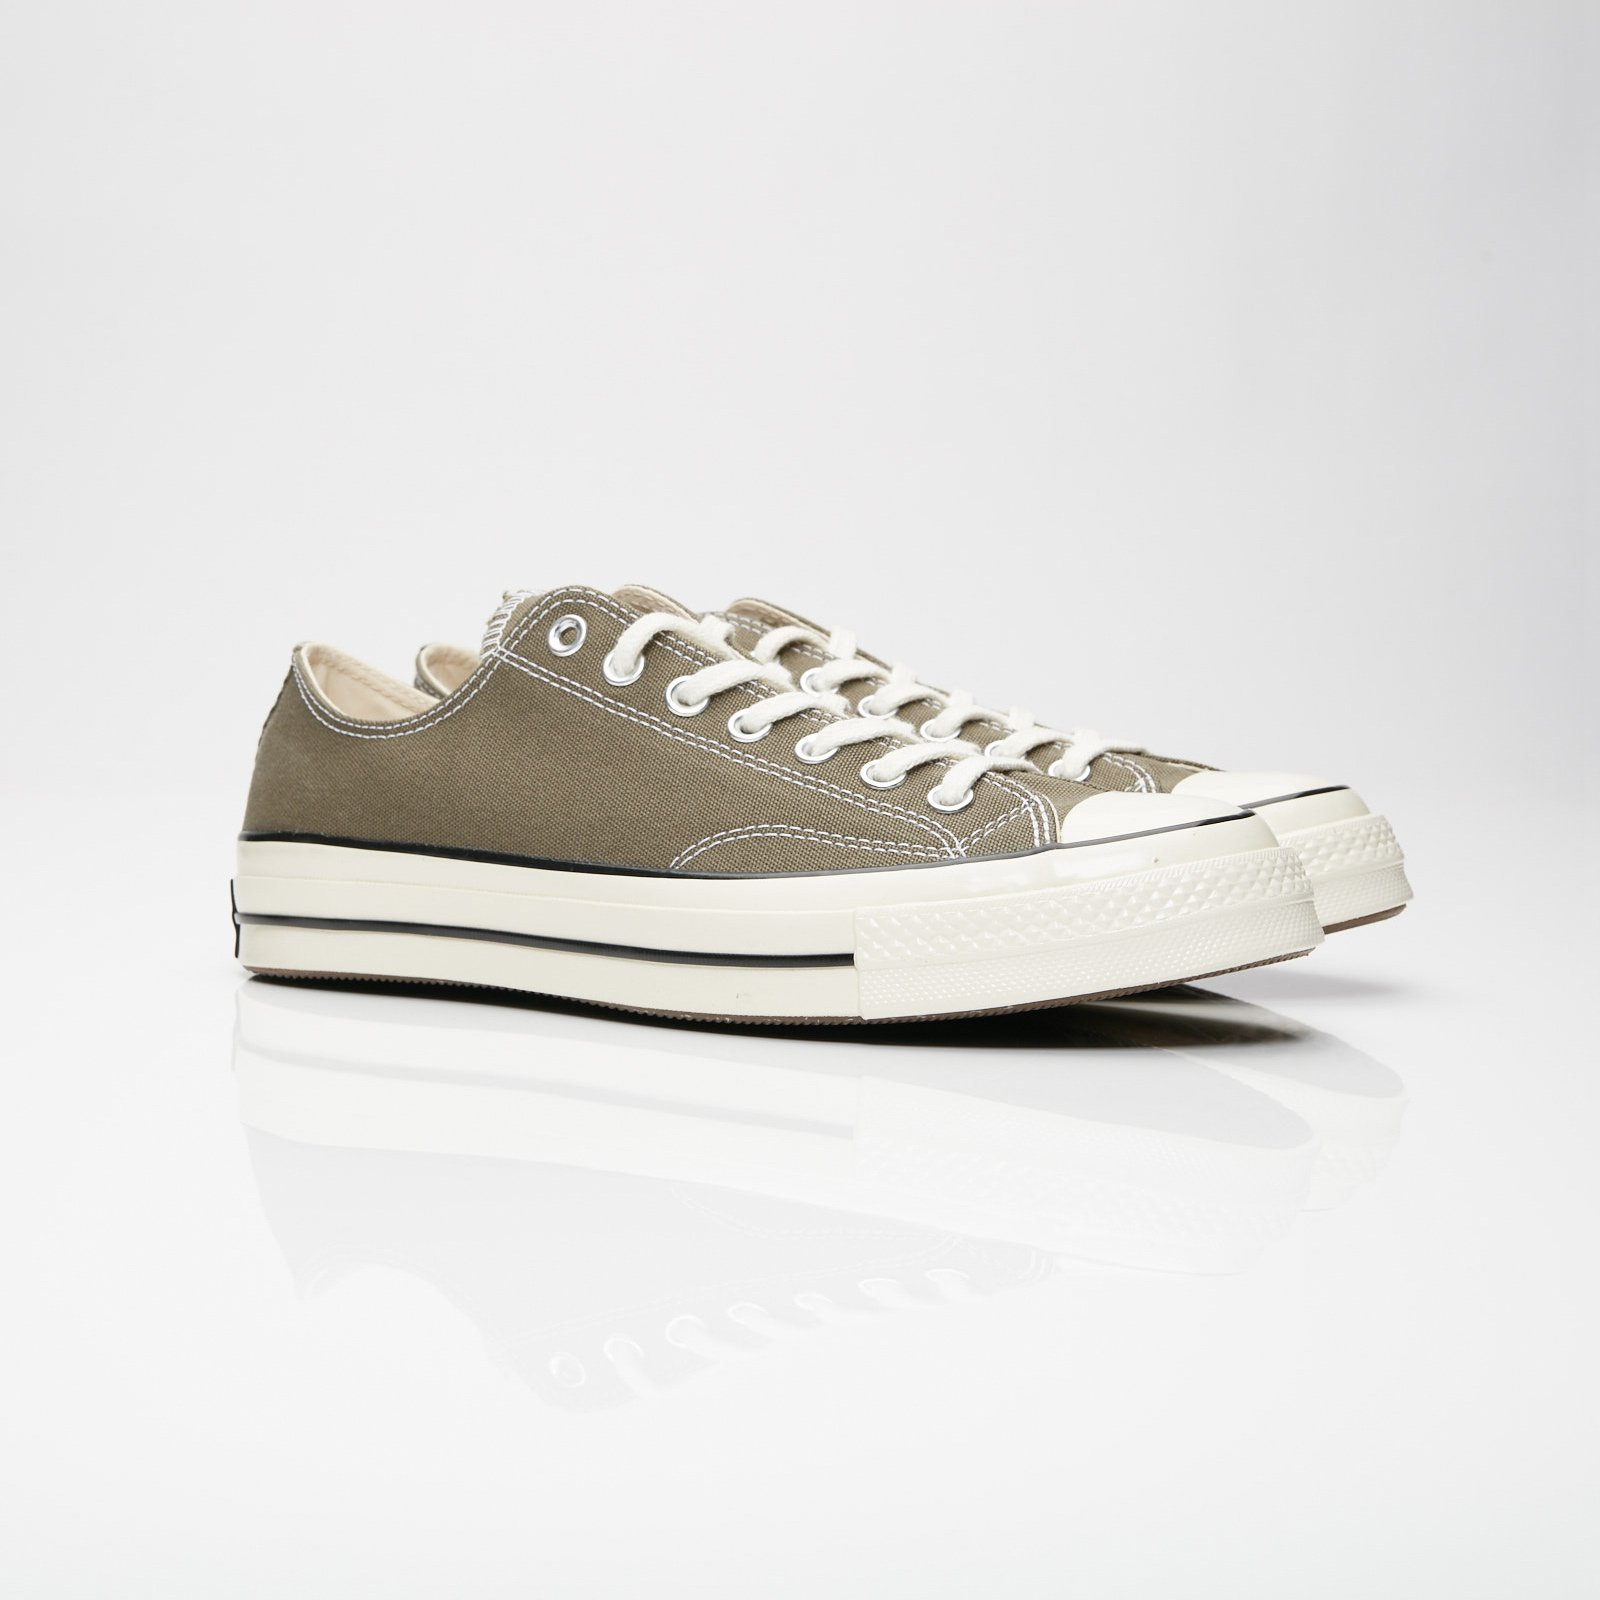 90dc6ff7a8c7 Converse Chuck Taylor 70 - Ox - 162060c - Sneakersnstuff